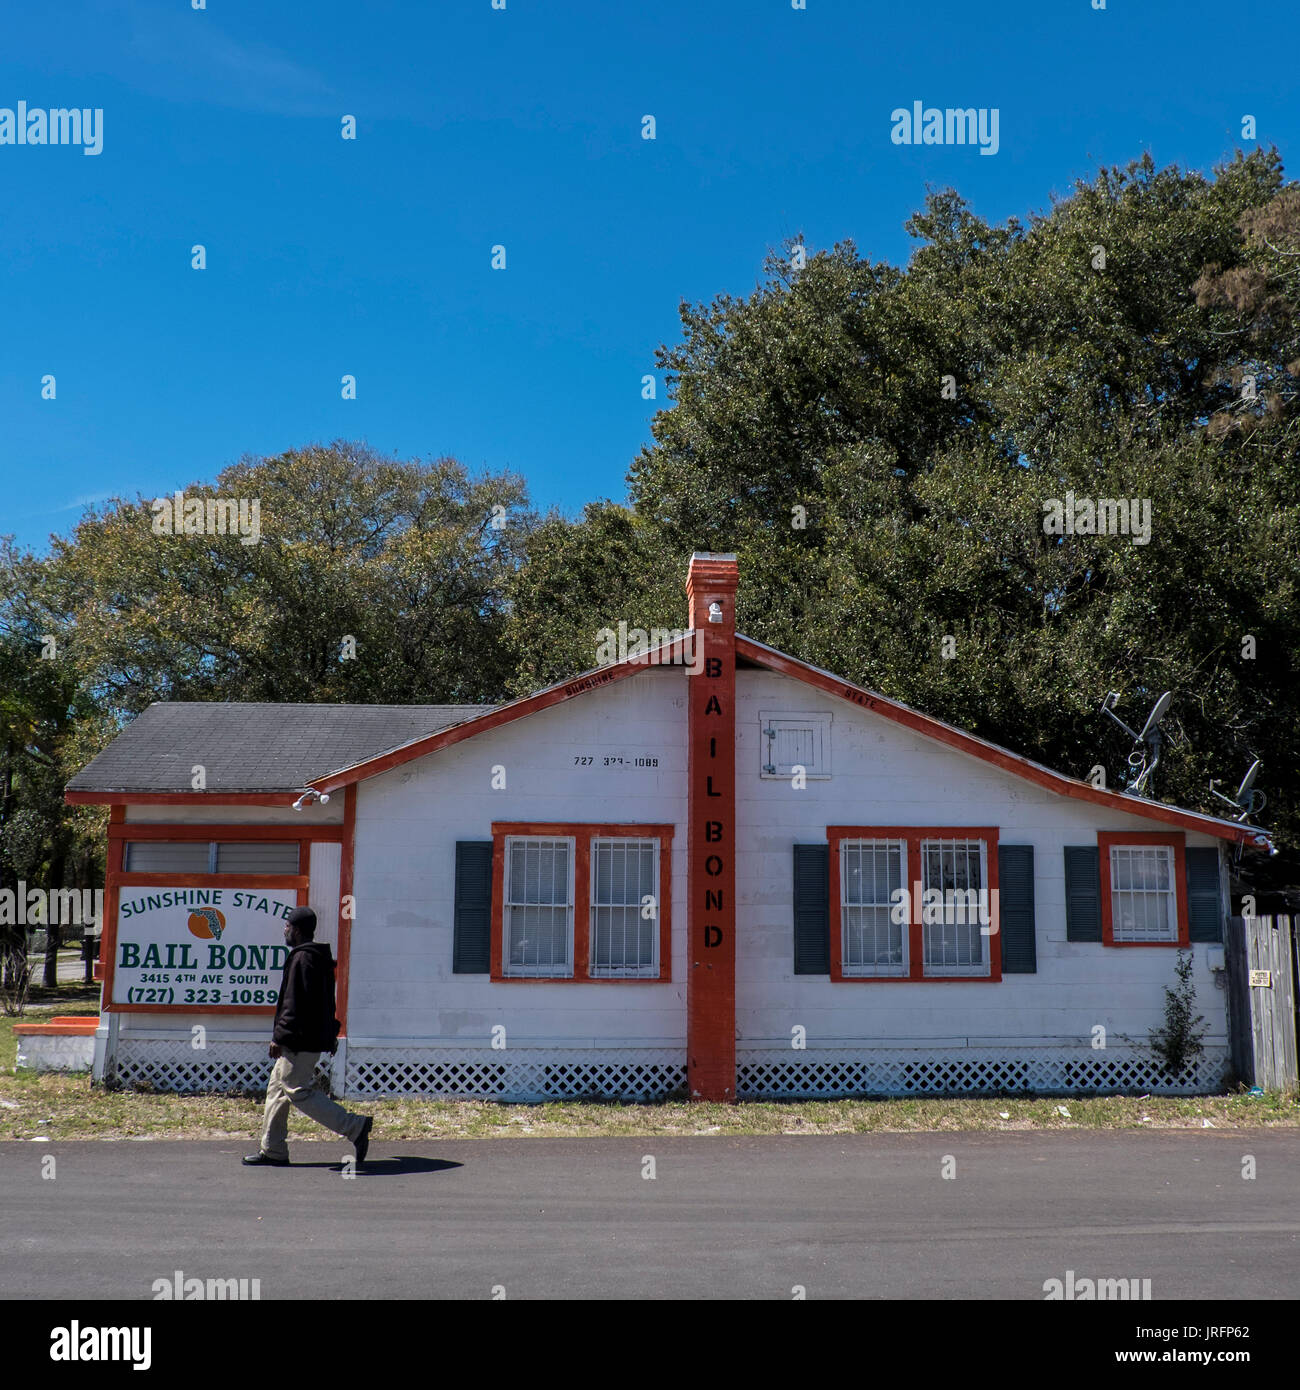 Bail bondsman's office in a shack by a highway in Florida, USA - Stock Image